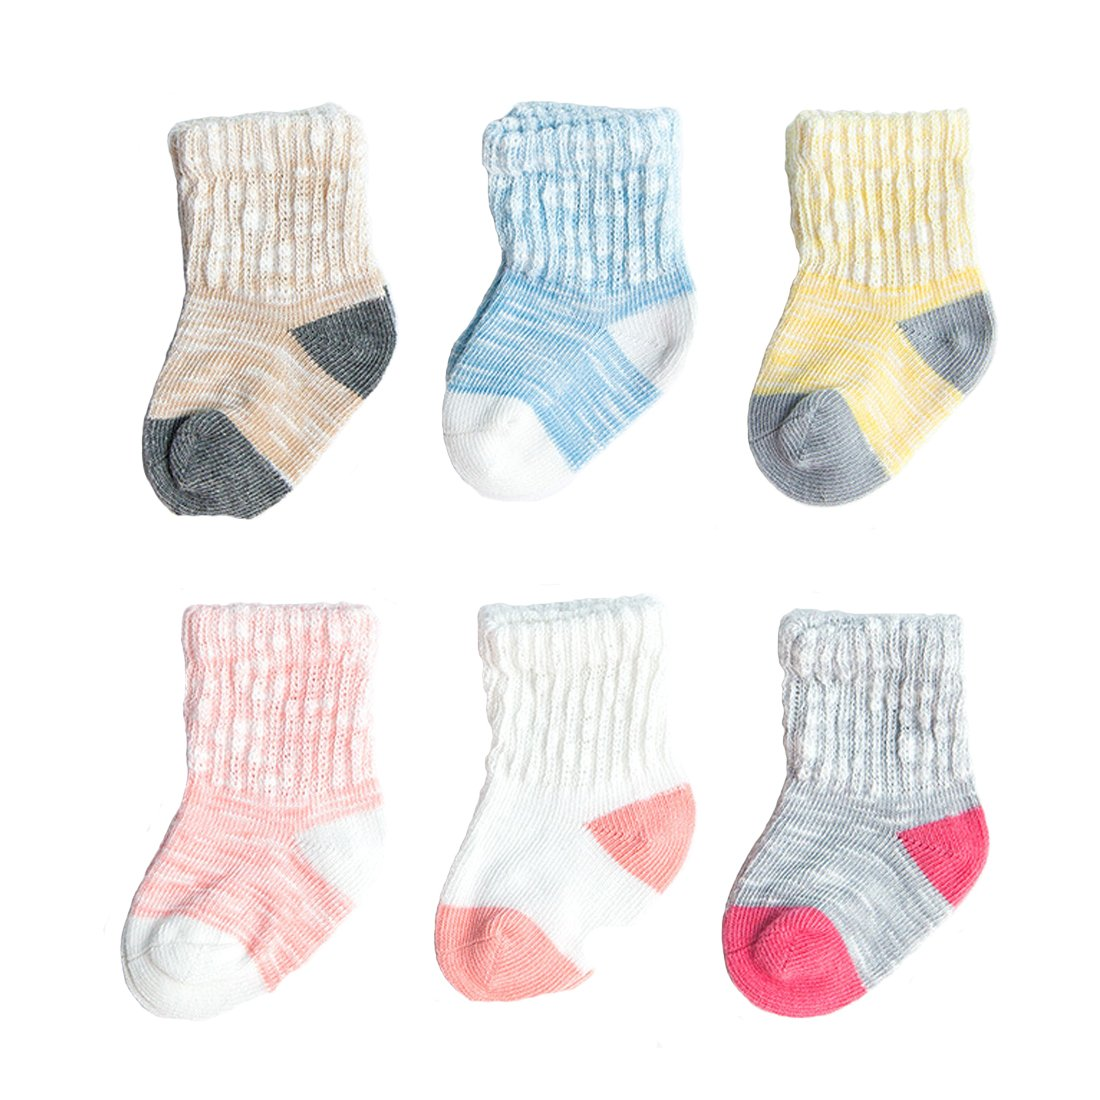 6 Pairs Bamboo Yarn Cotton Socks Unisex Baby Toddlers Socks fit Spring Autumn